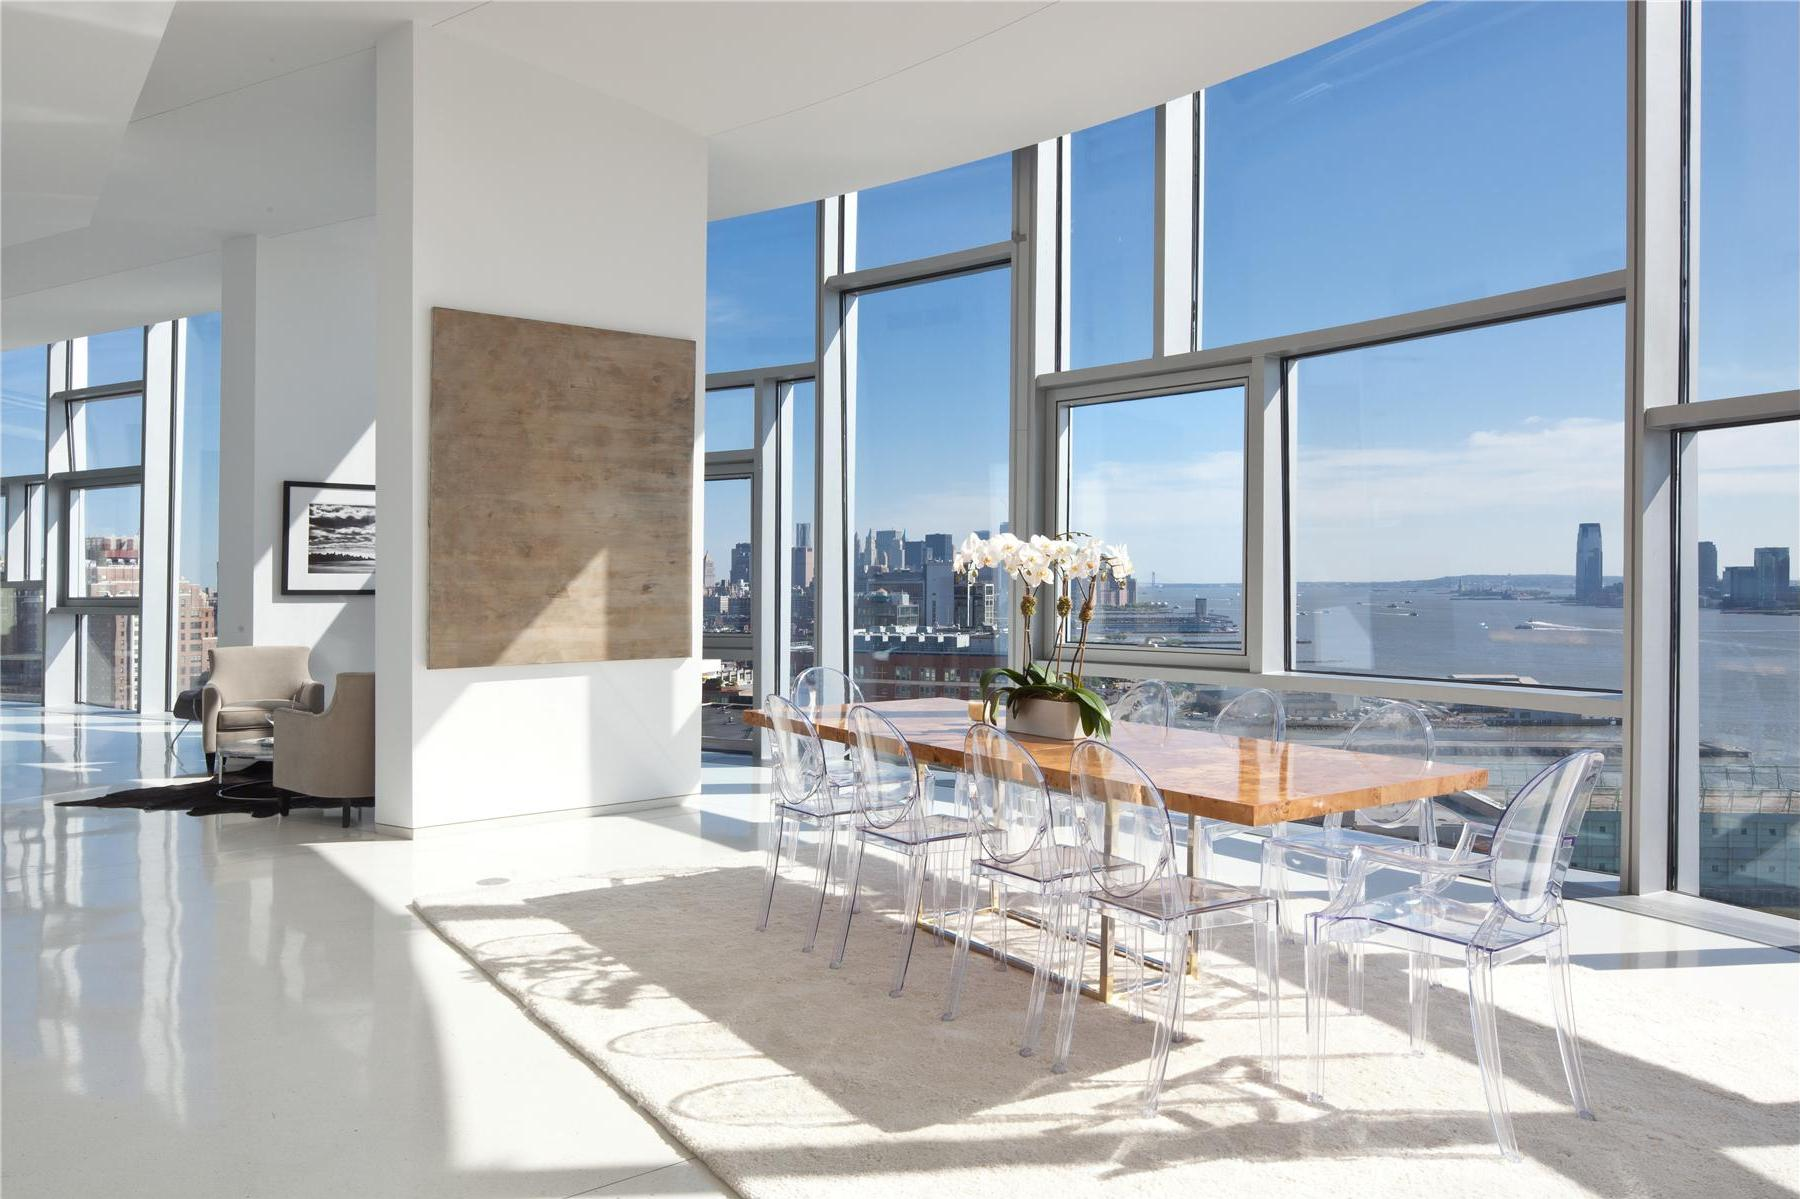 Luxury 100 eleneth avenue penthouse in manhattan for Luxury penthouses in manhattan